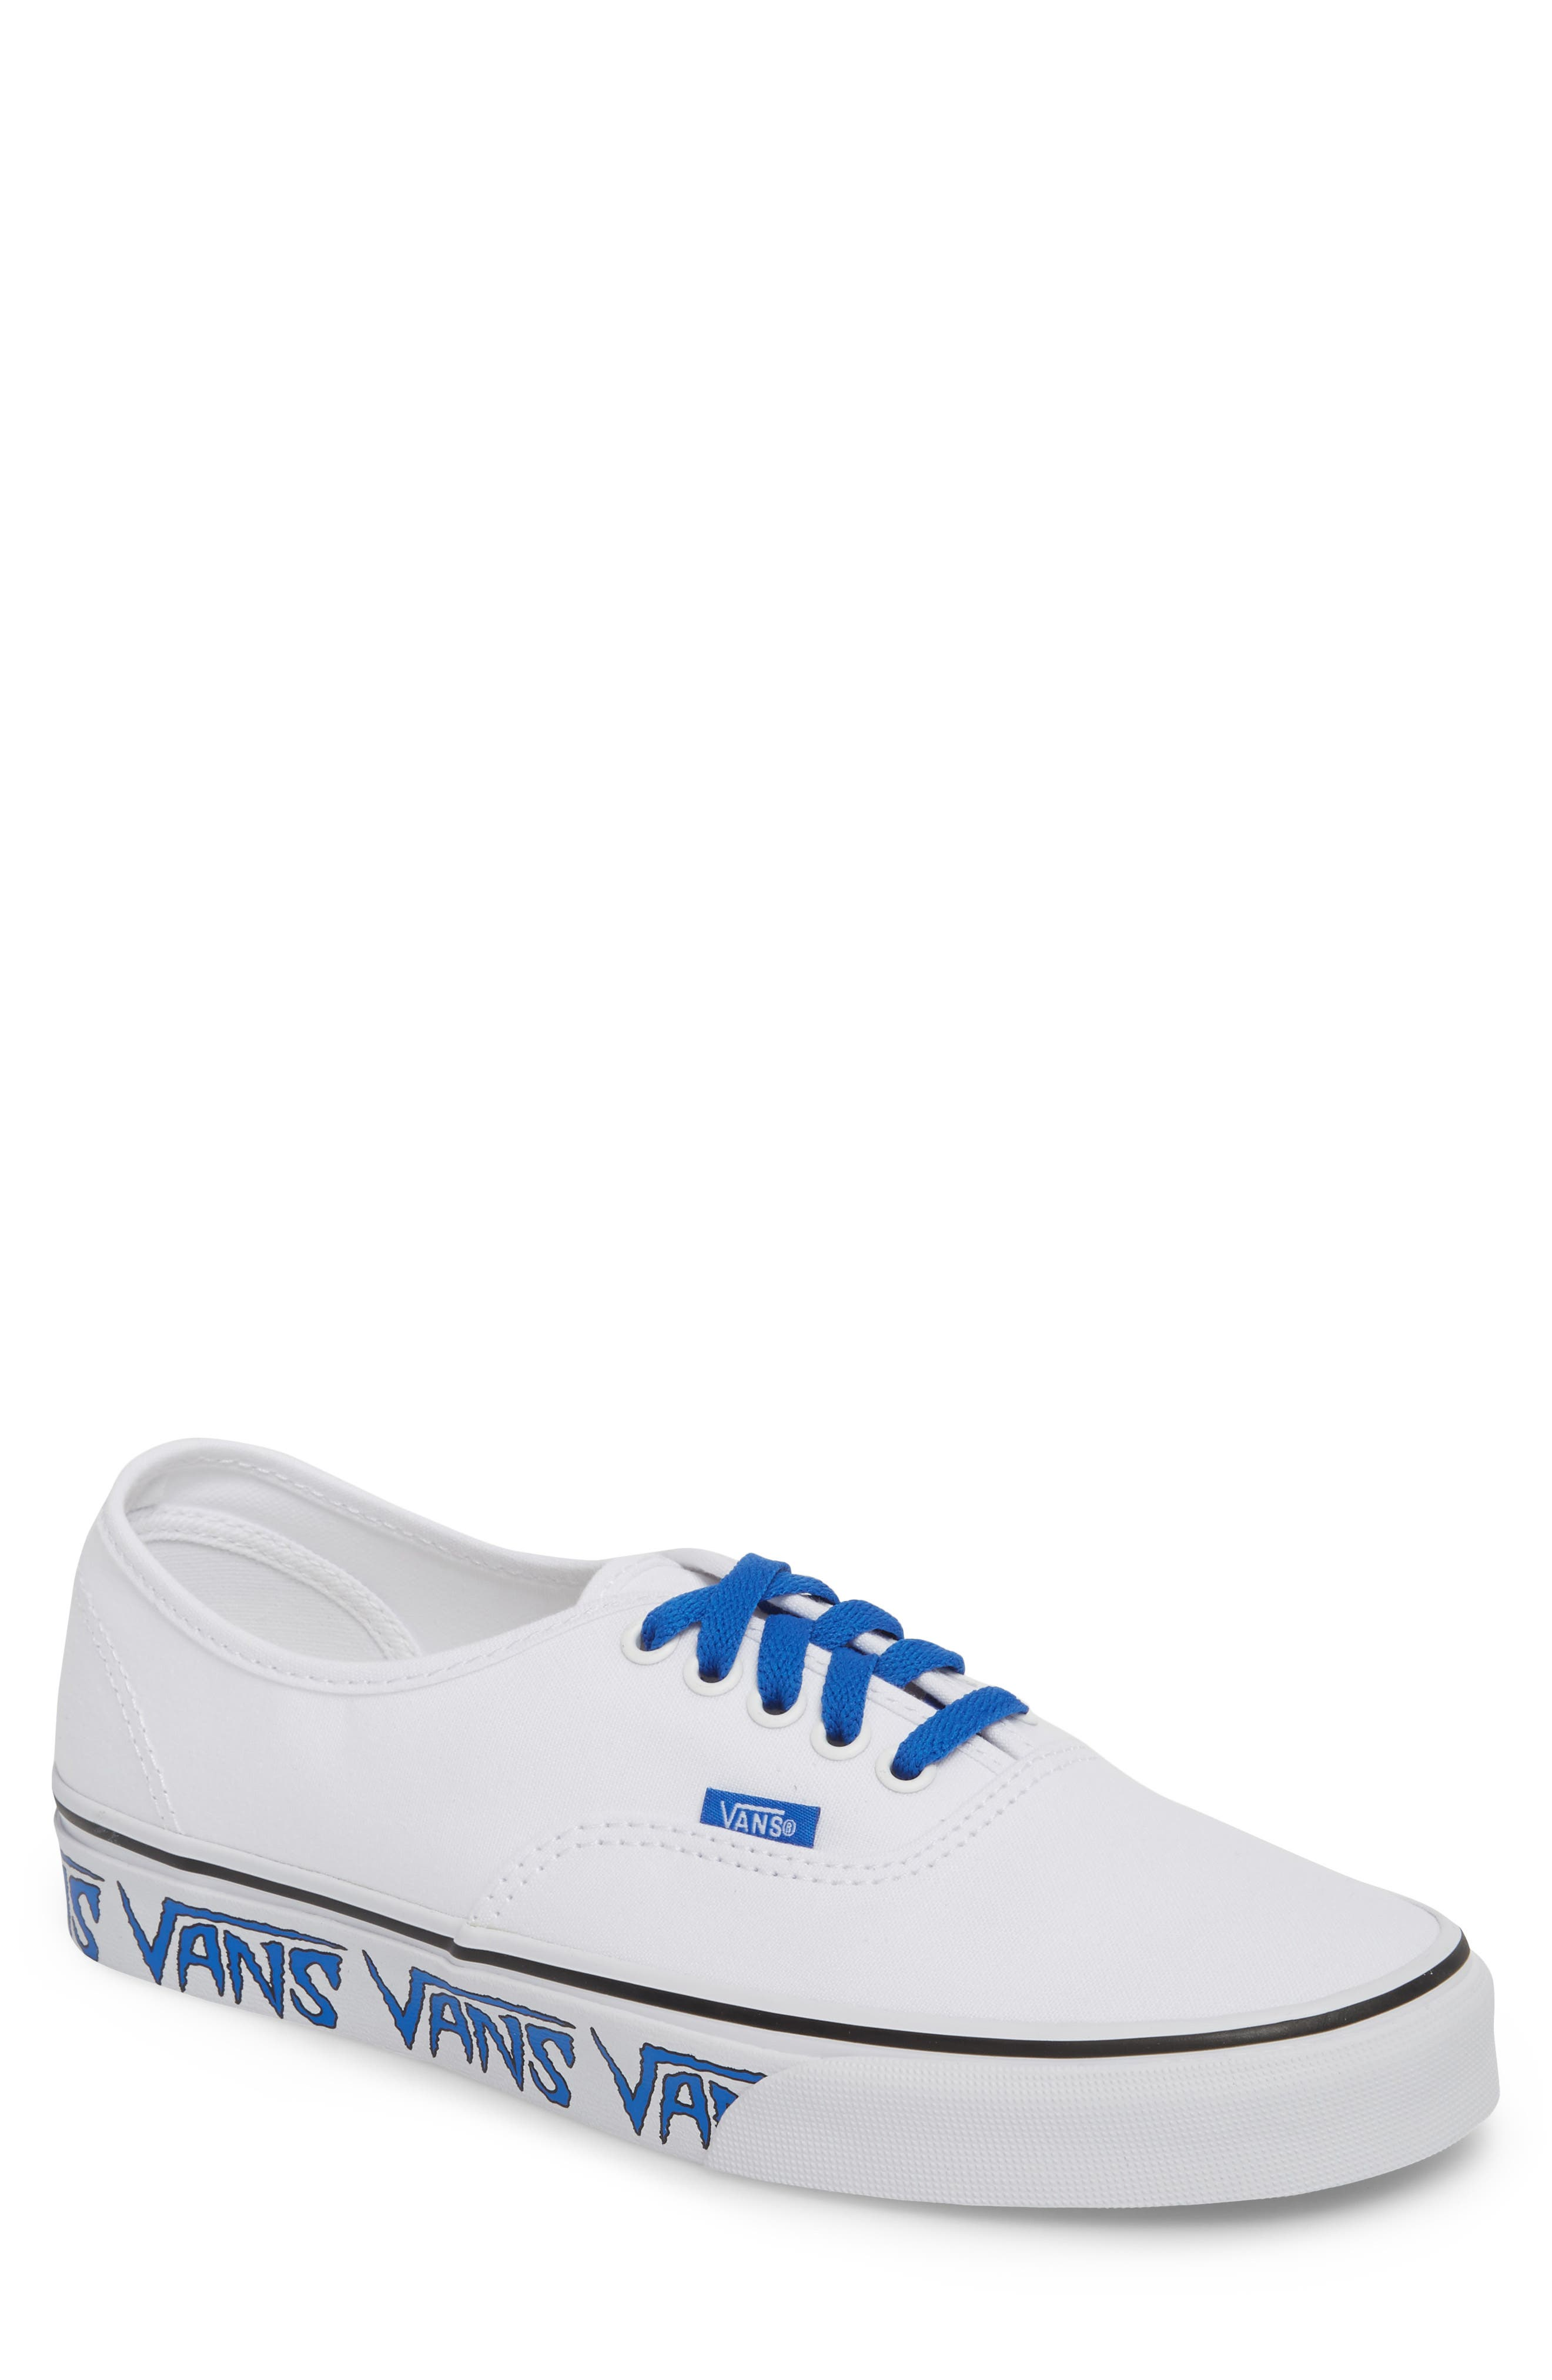 Authentic Sketch Sidewall Sneaker,                         Main,                         color,